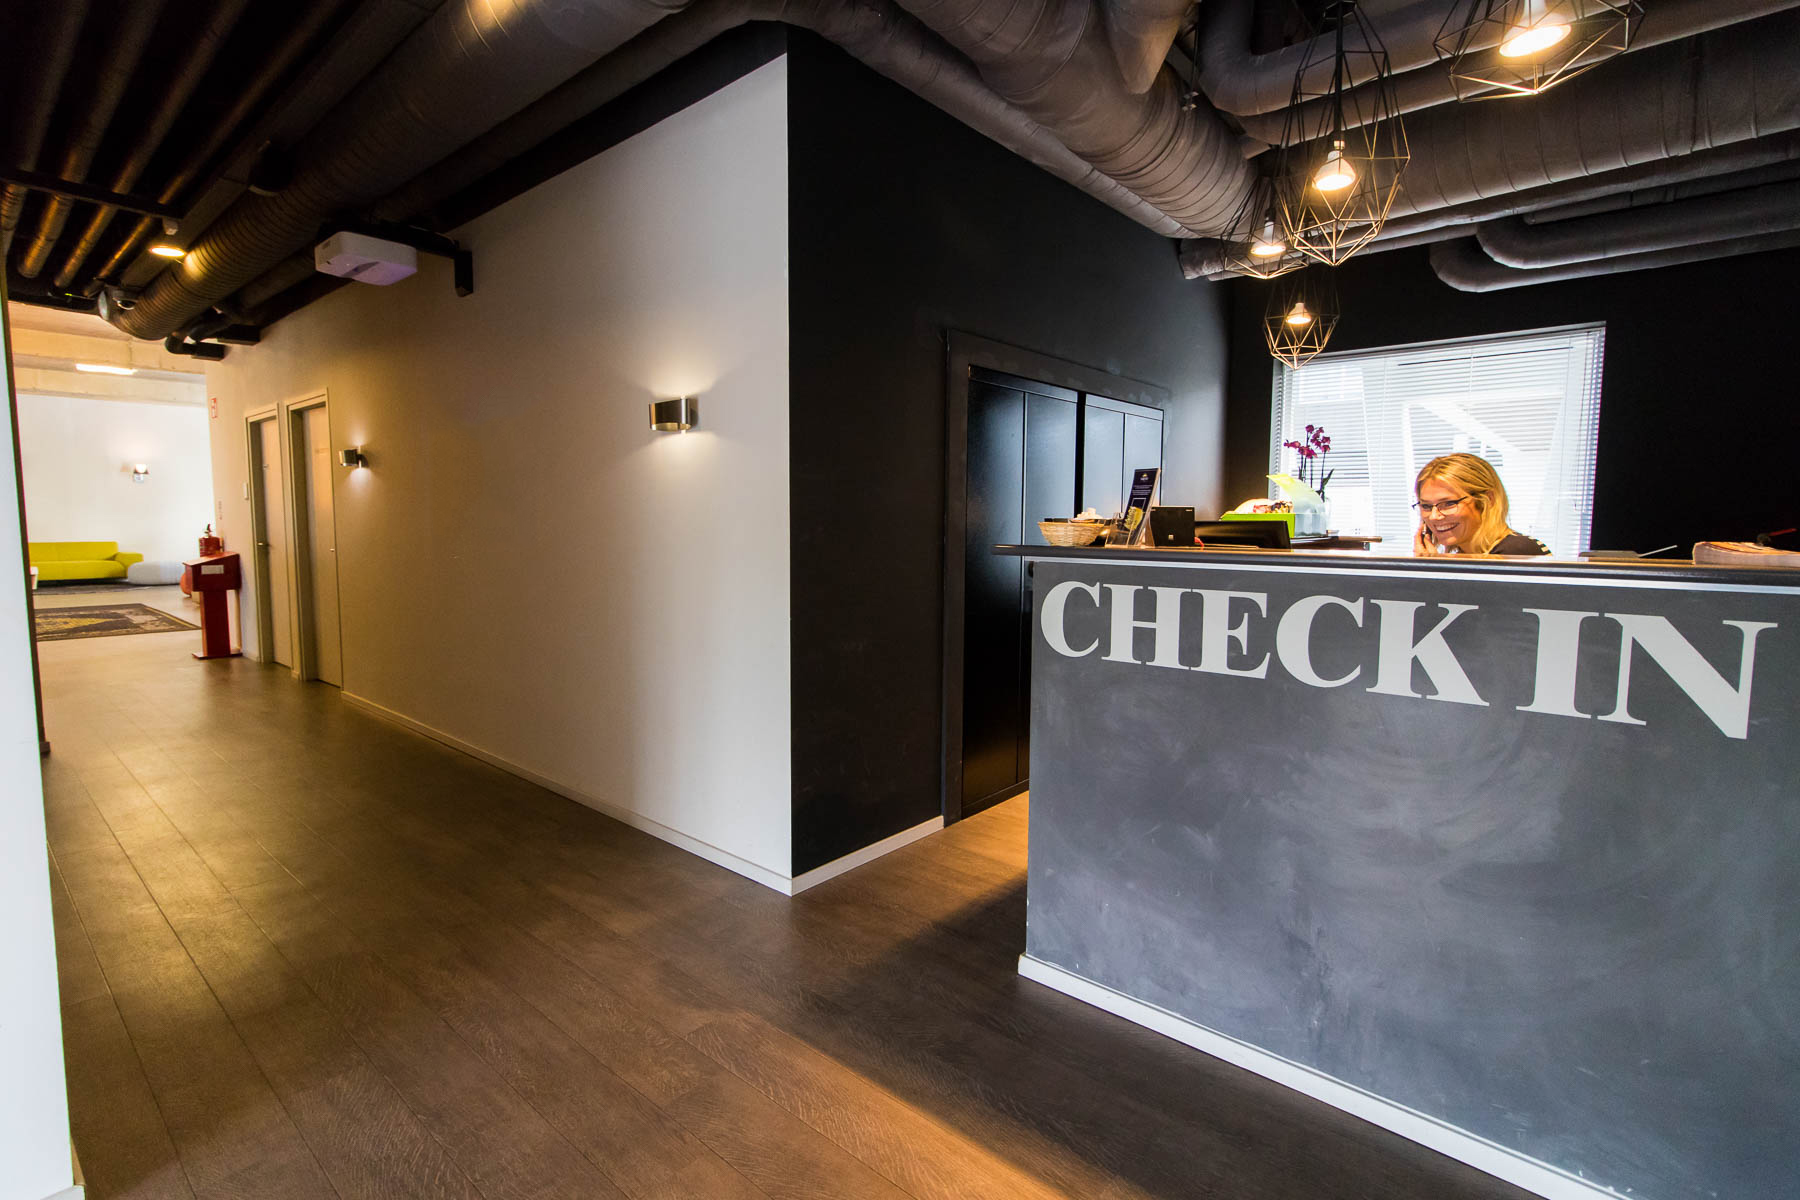 Reception during working hours